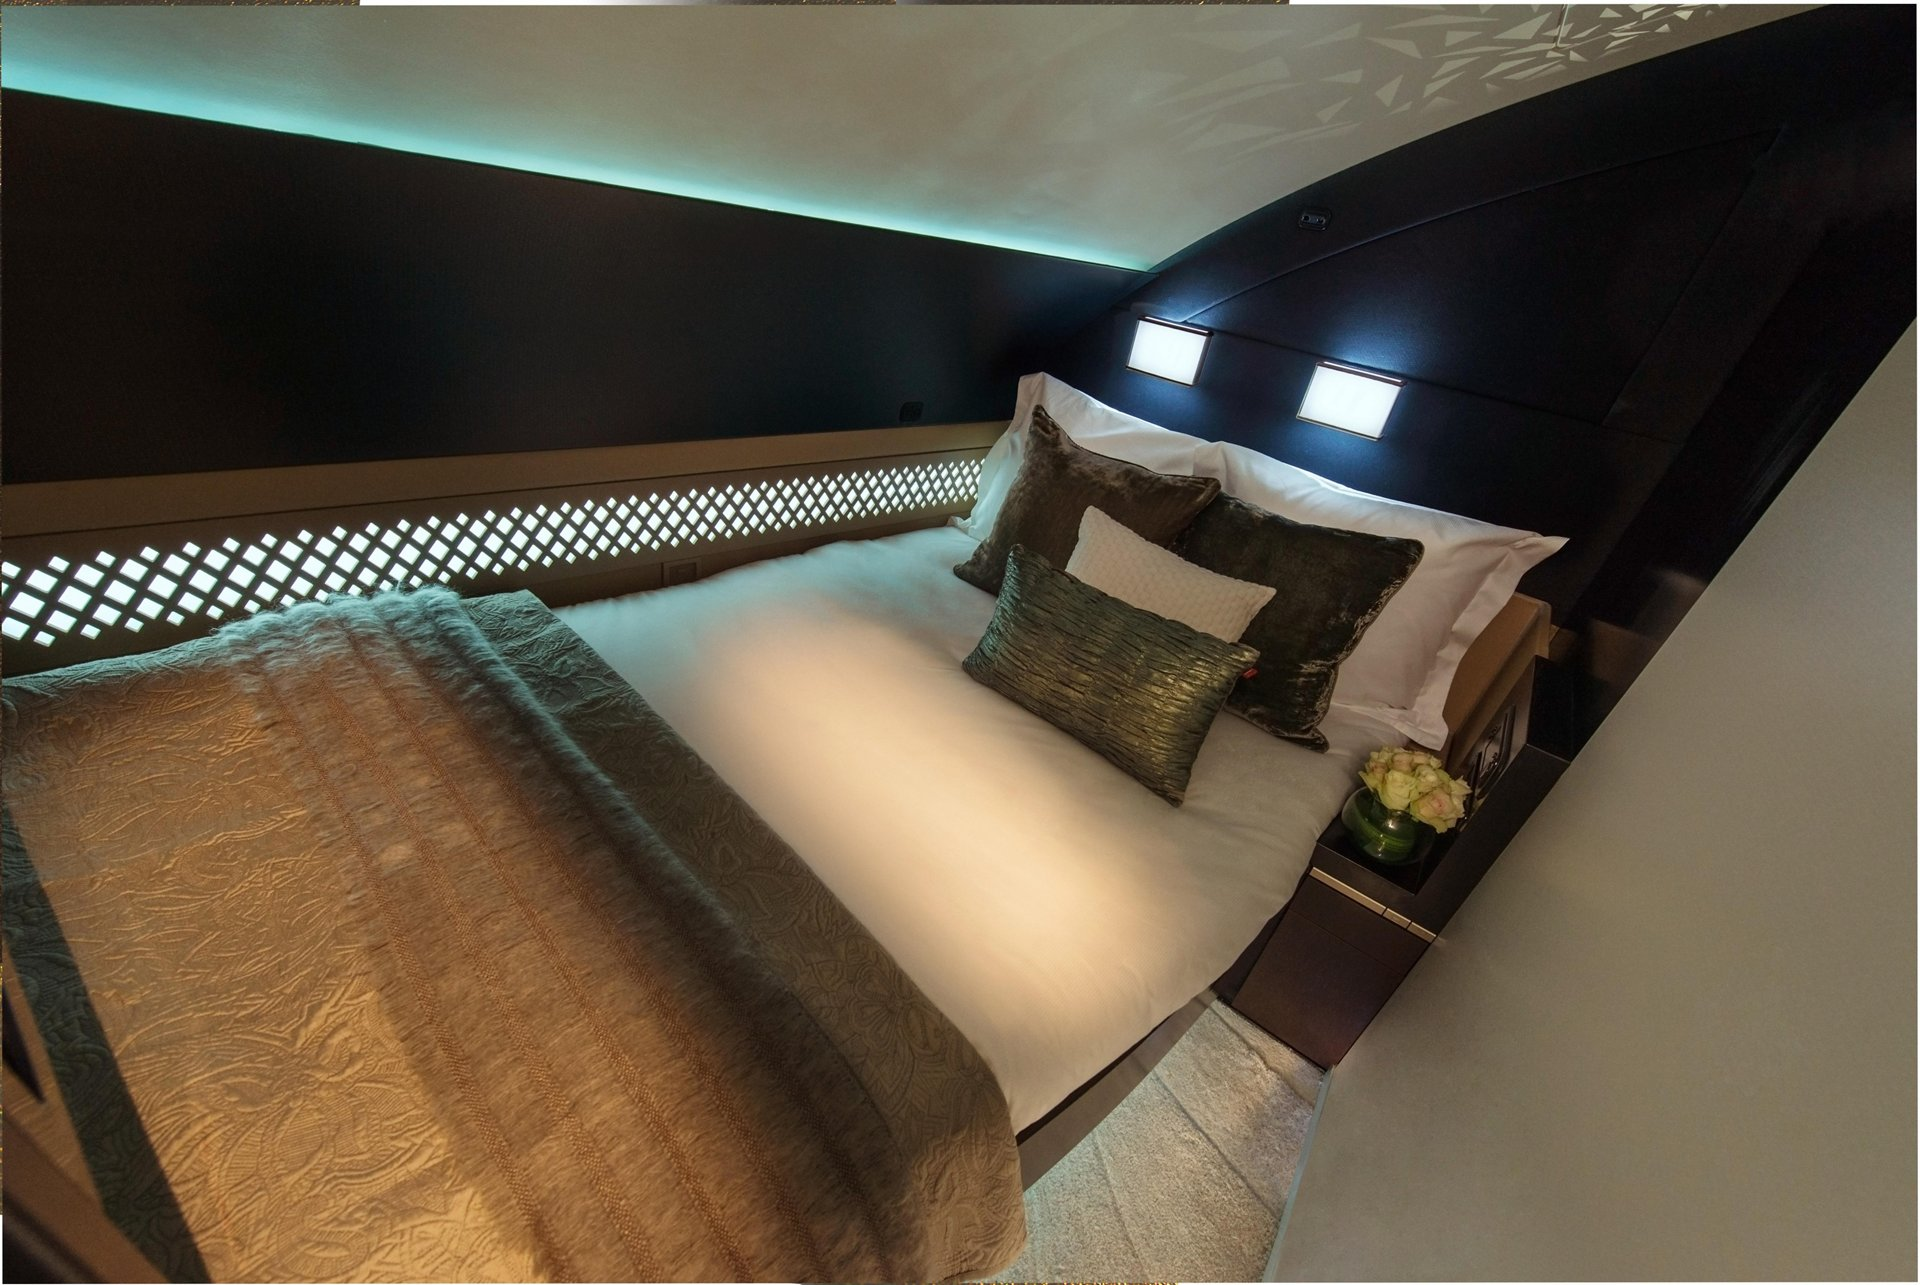 A380 Etihad The Residence bed